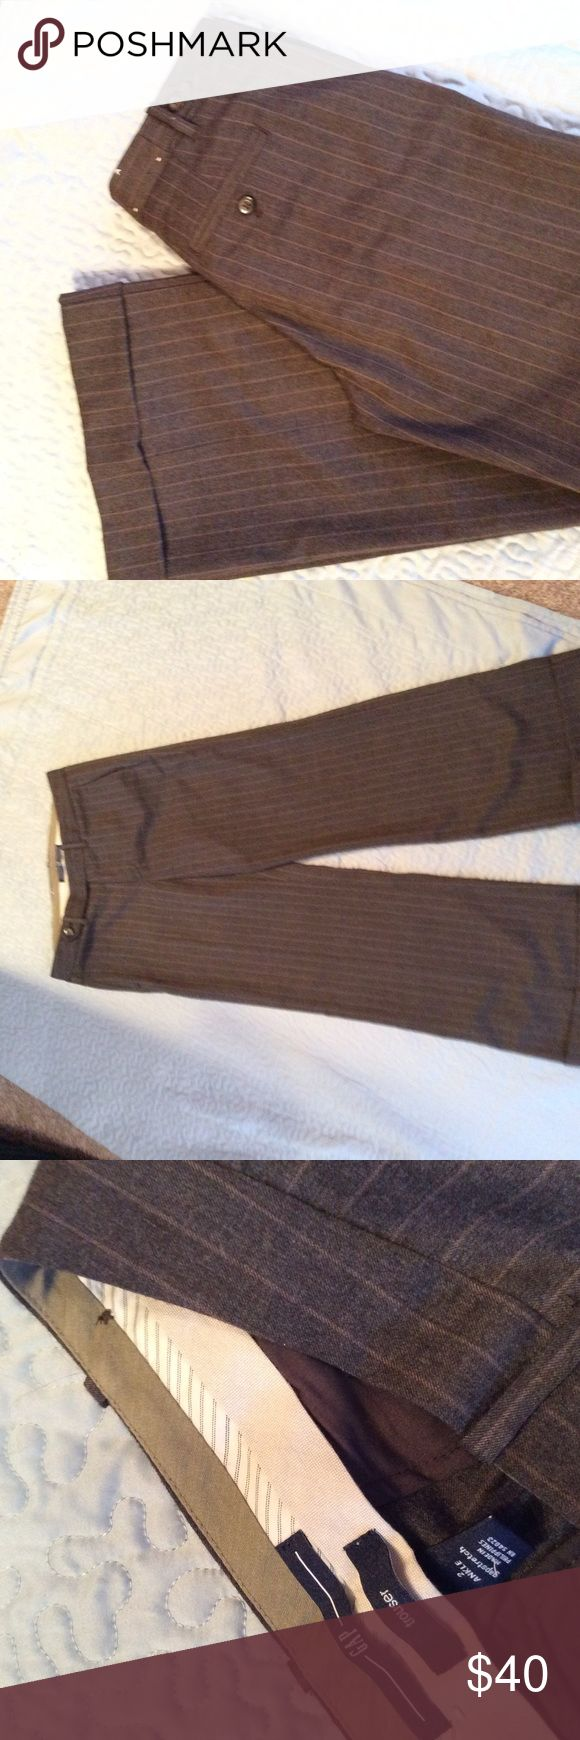 Gap dress trousers. Price dropped Gap gray with brown  striped trousers. One button front   Front side pockets. Back pockets. Gapstretch 50% wool 48% polyester 2% spandex. 2ankle in good condition GAP Pants Ankle & Cropped